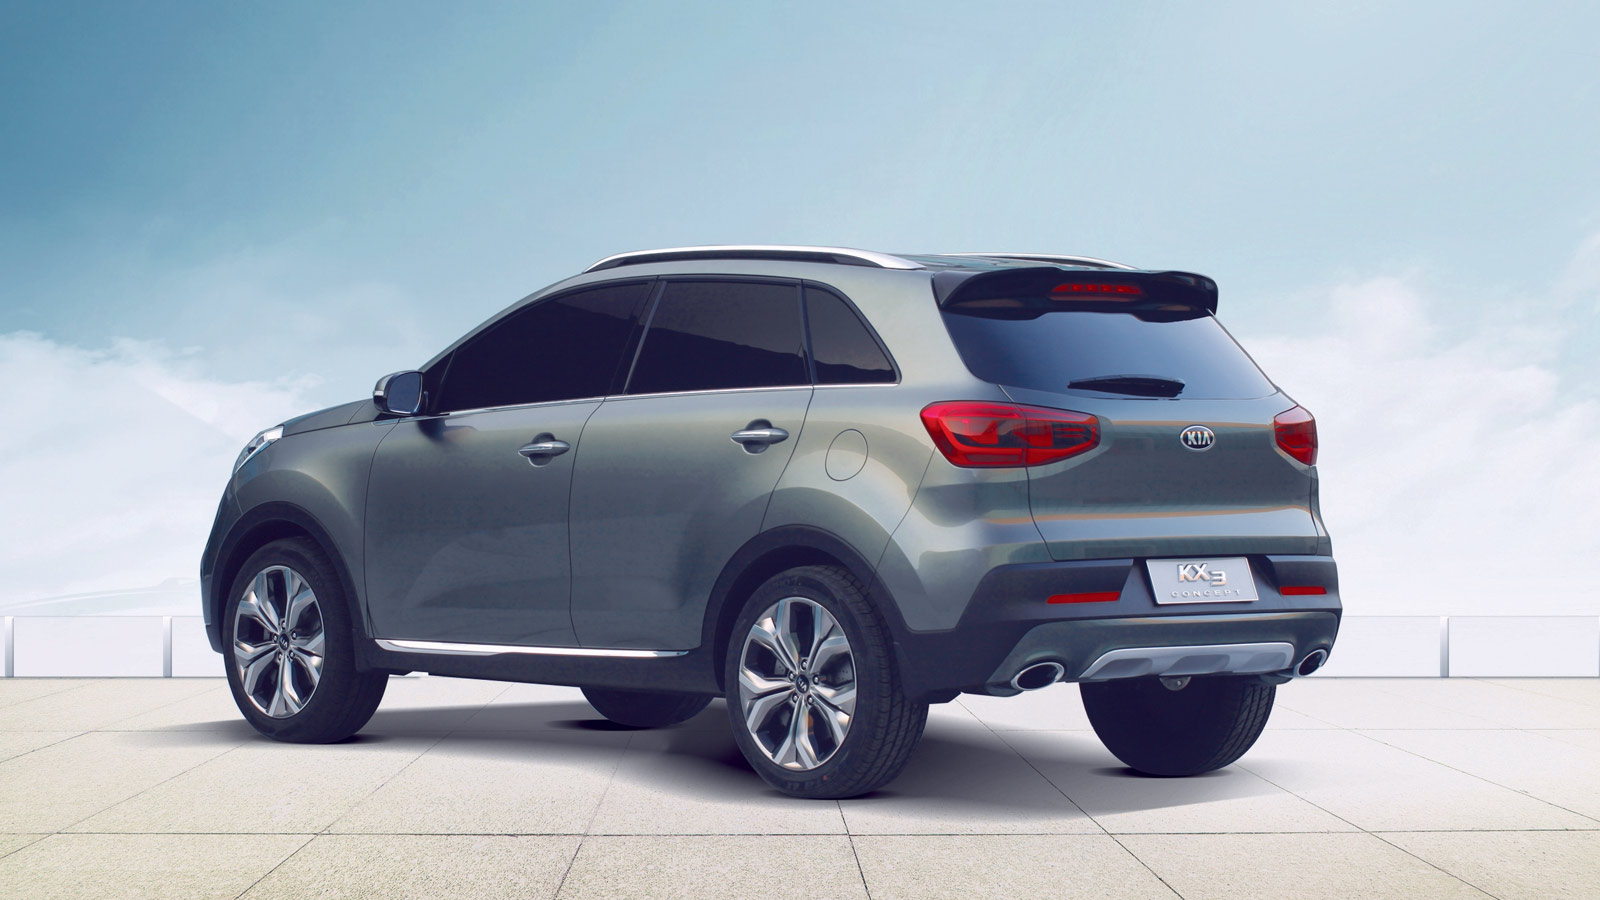 Kia Will Also Have Small SUV for US-market in 2019